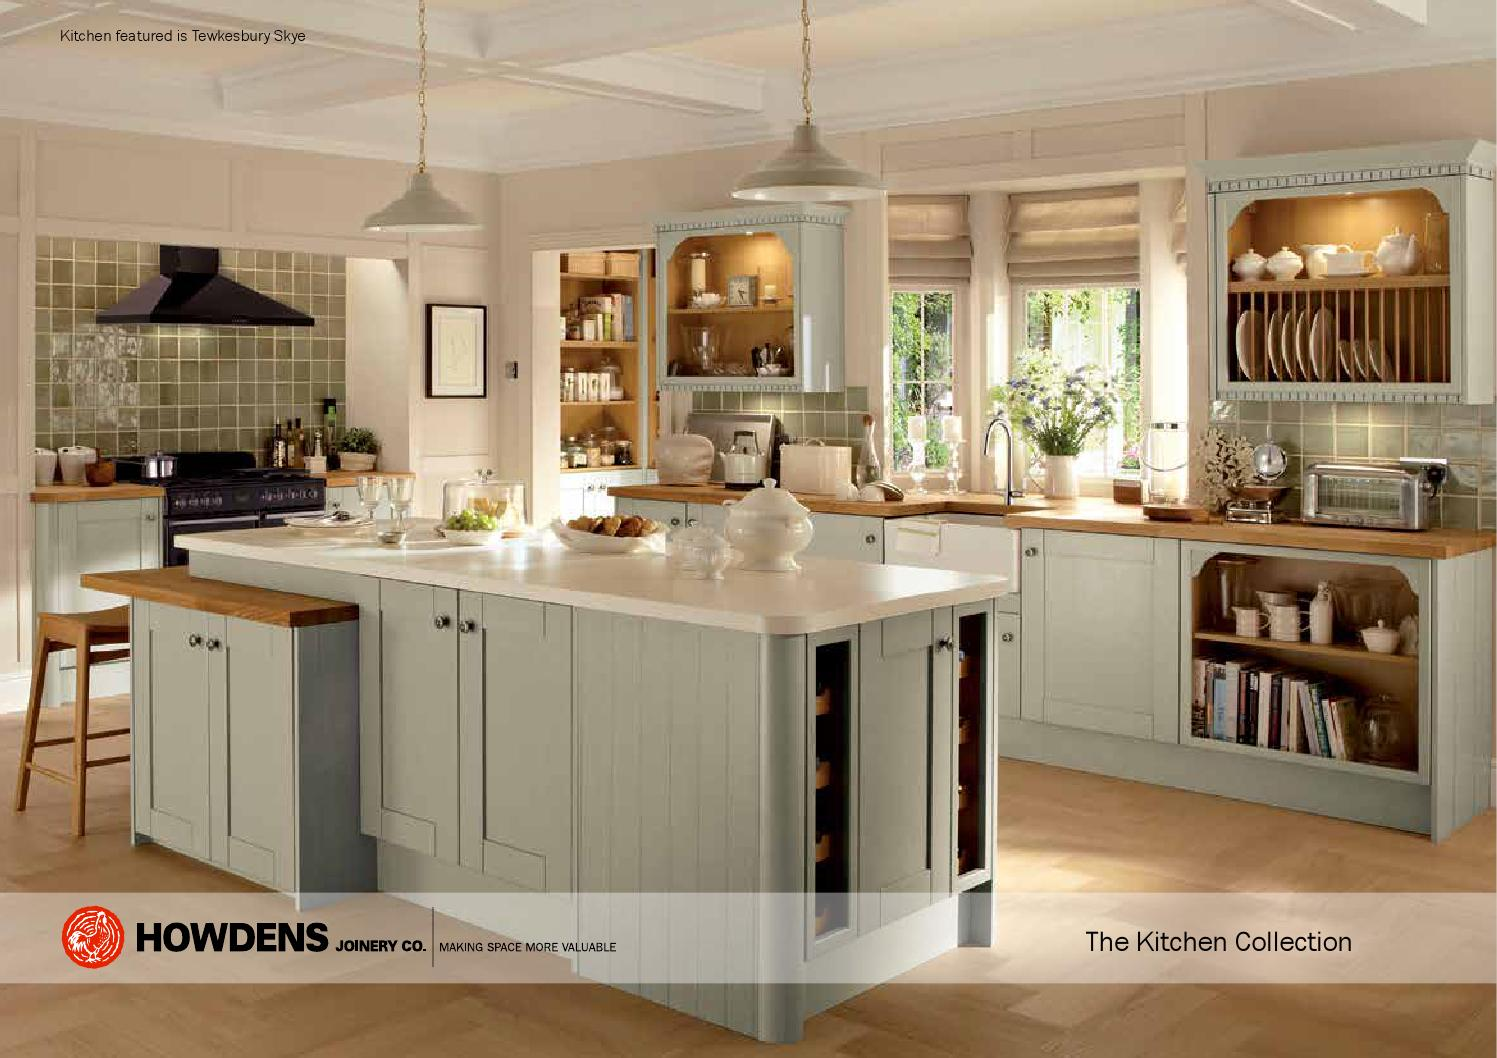 kitchen design ideas howdens kitchen collection brochure by jskproperty issuu 796